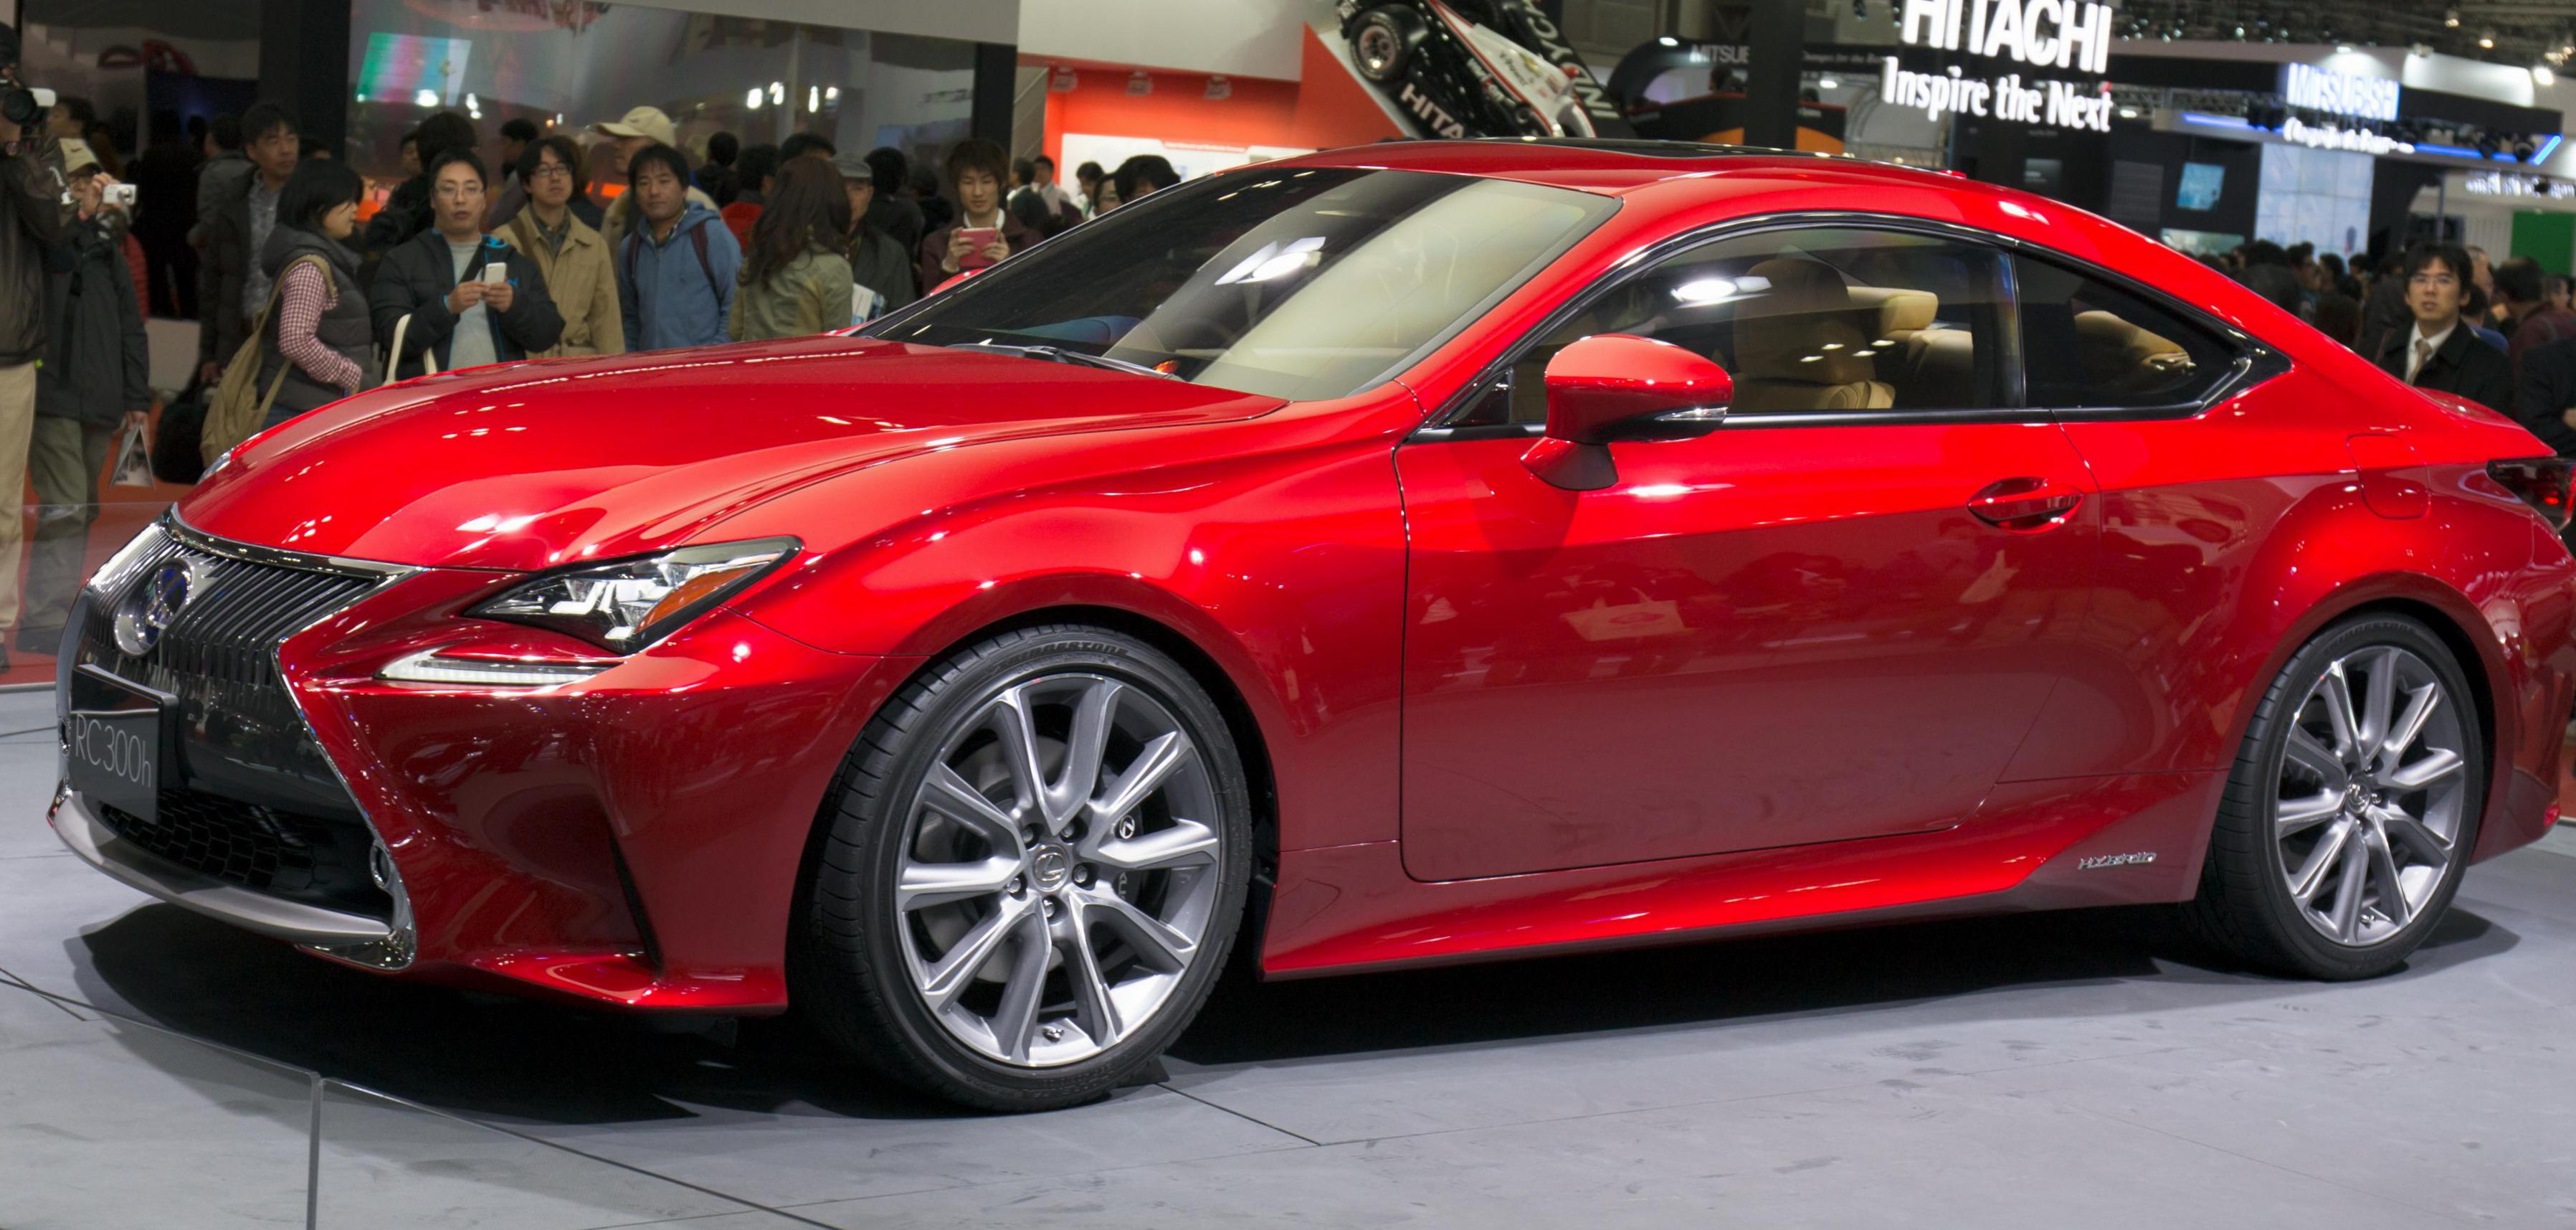 Lexus IS 300h Specifications 2014